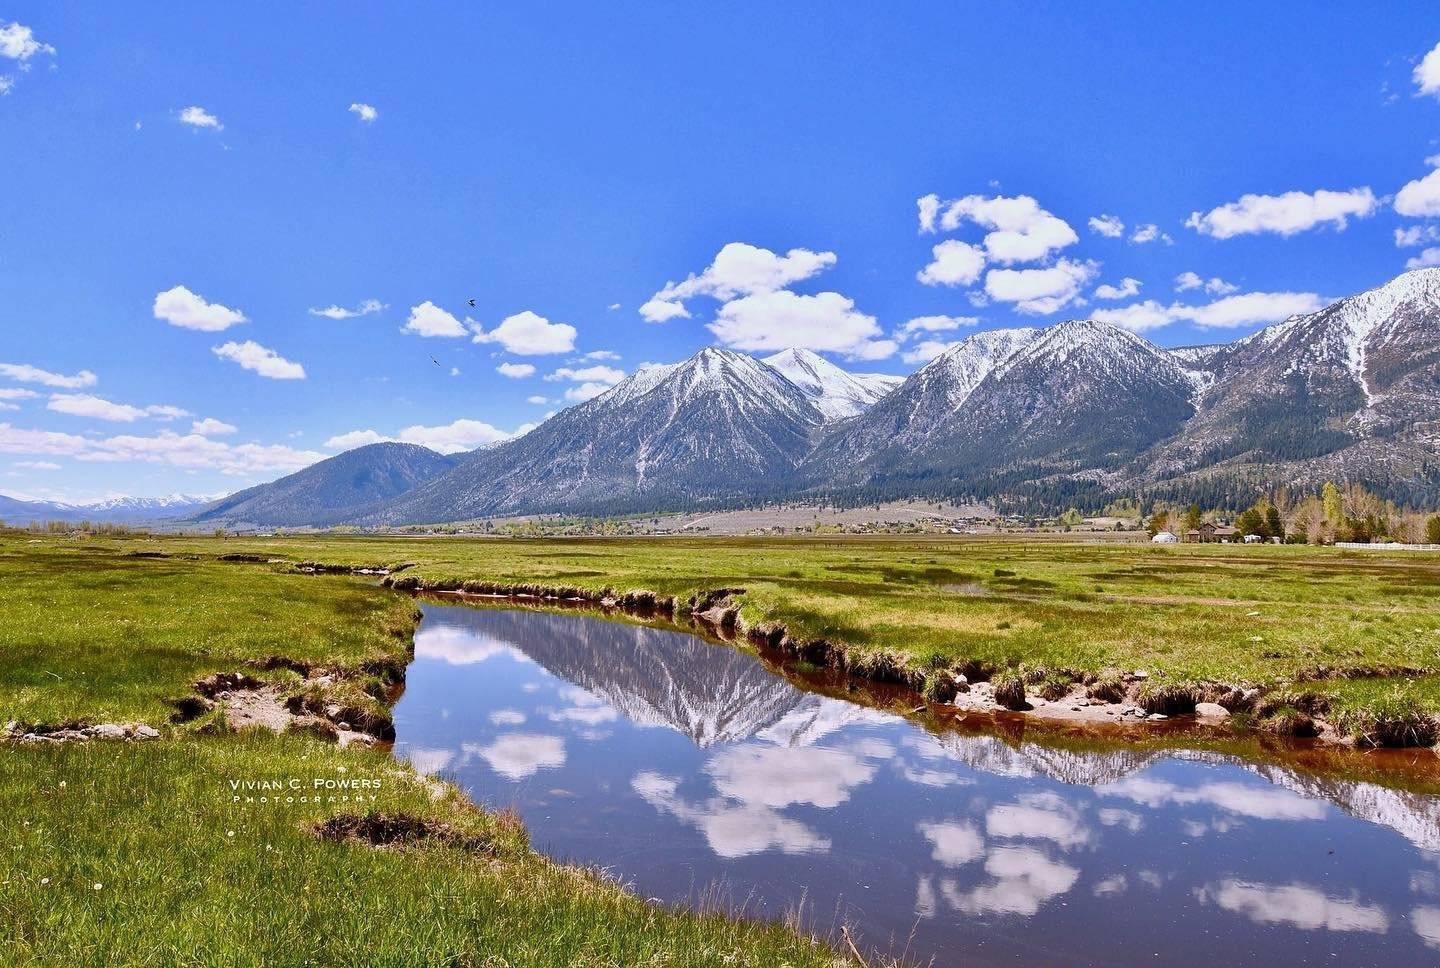 Your outer world is a reflection of your inner world. - T. Harv Eker #whyCV 📸: Vivian Powers  #CarsonValley #CarsonValleyNV #MyCarsonValley #TravelNevada #DFMI #exploreNevada #EasternSierra #EasternSierraLove #EasternSierraNevada #hwy395 #wanderlust #bestvacation #travelawesome #travelandlife #travelholic #travelgram #instatravel #travelblogger #igtravel #travelgram #letsguide